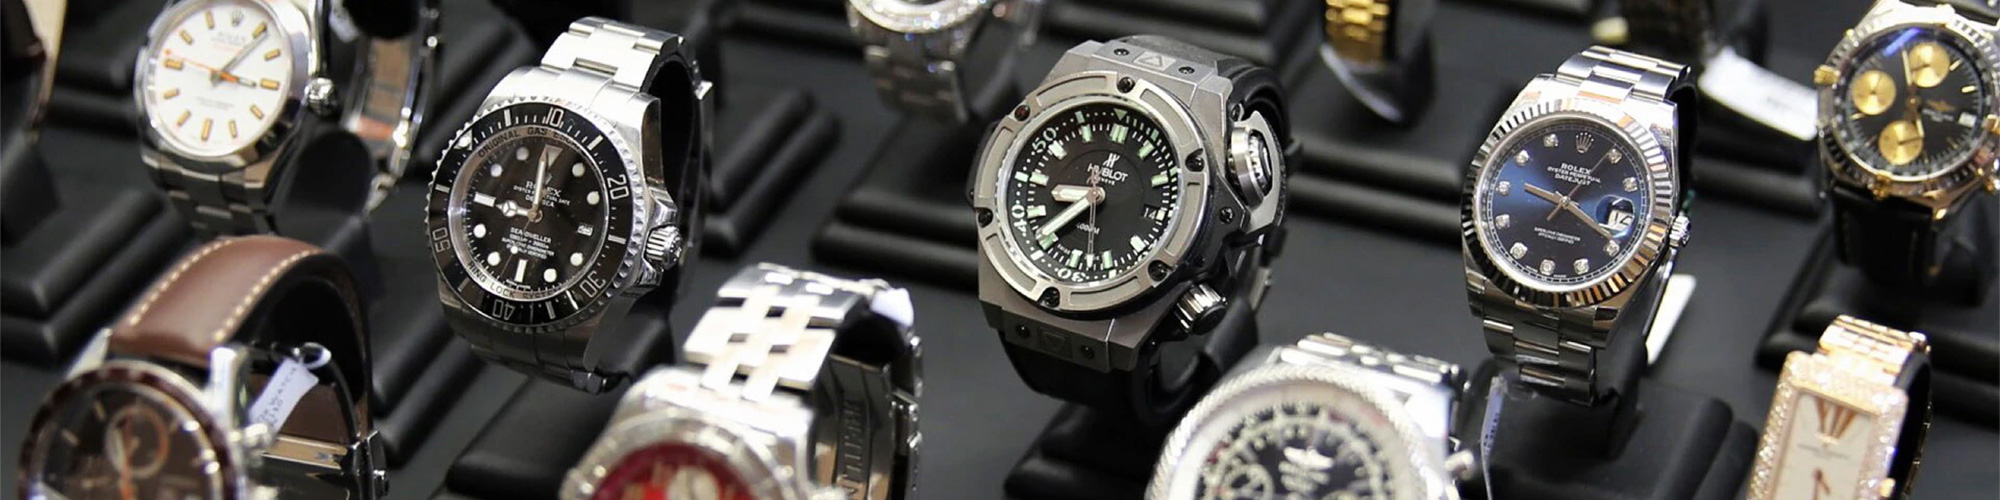 Find great deals on luxury brands like rolex tiffany apple canon nikon montblanc